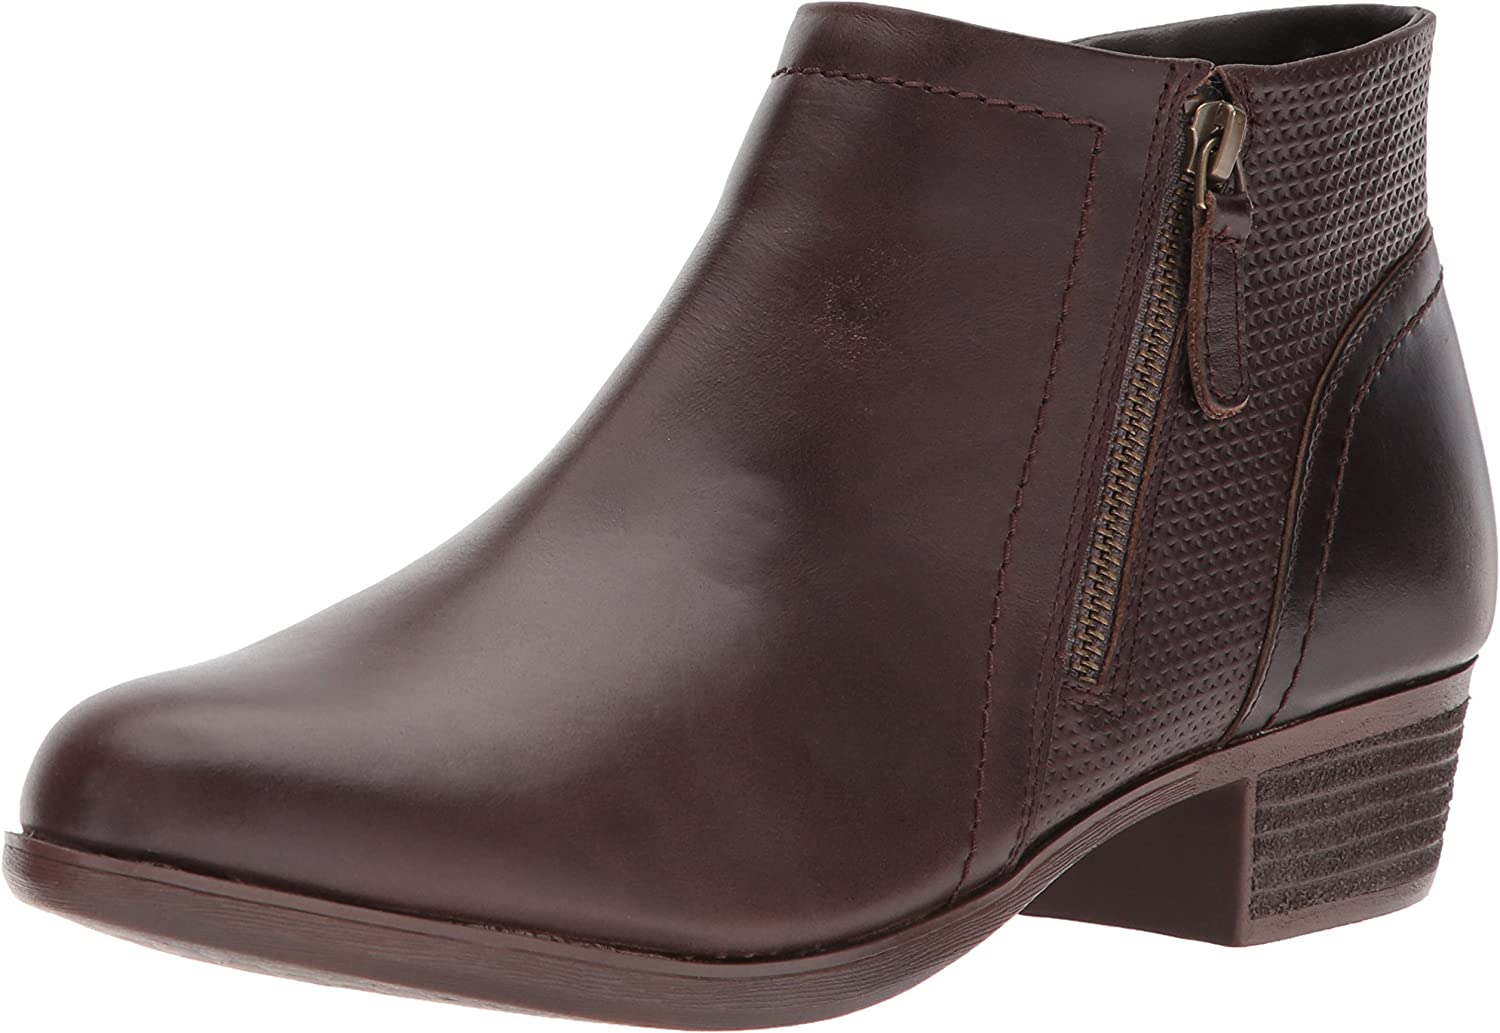 Cobb Hill Womens Oliana Panel Boot Ankle Boot